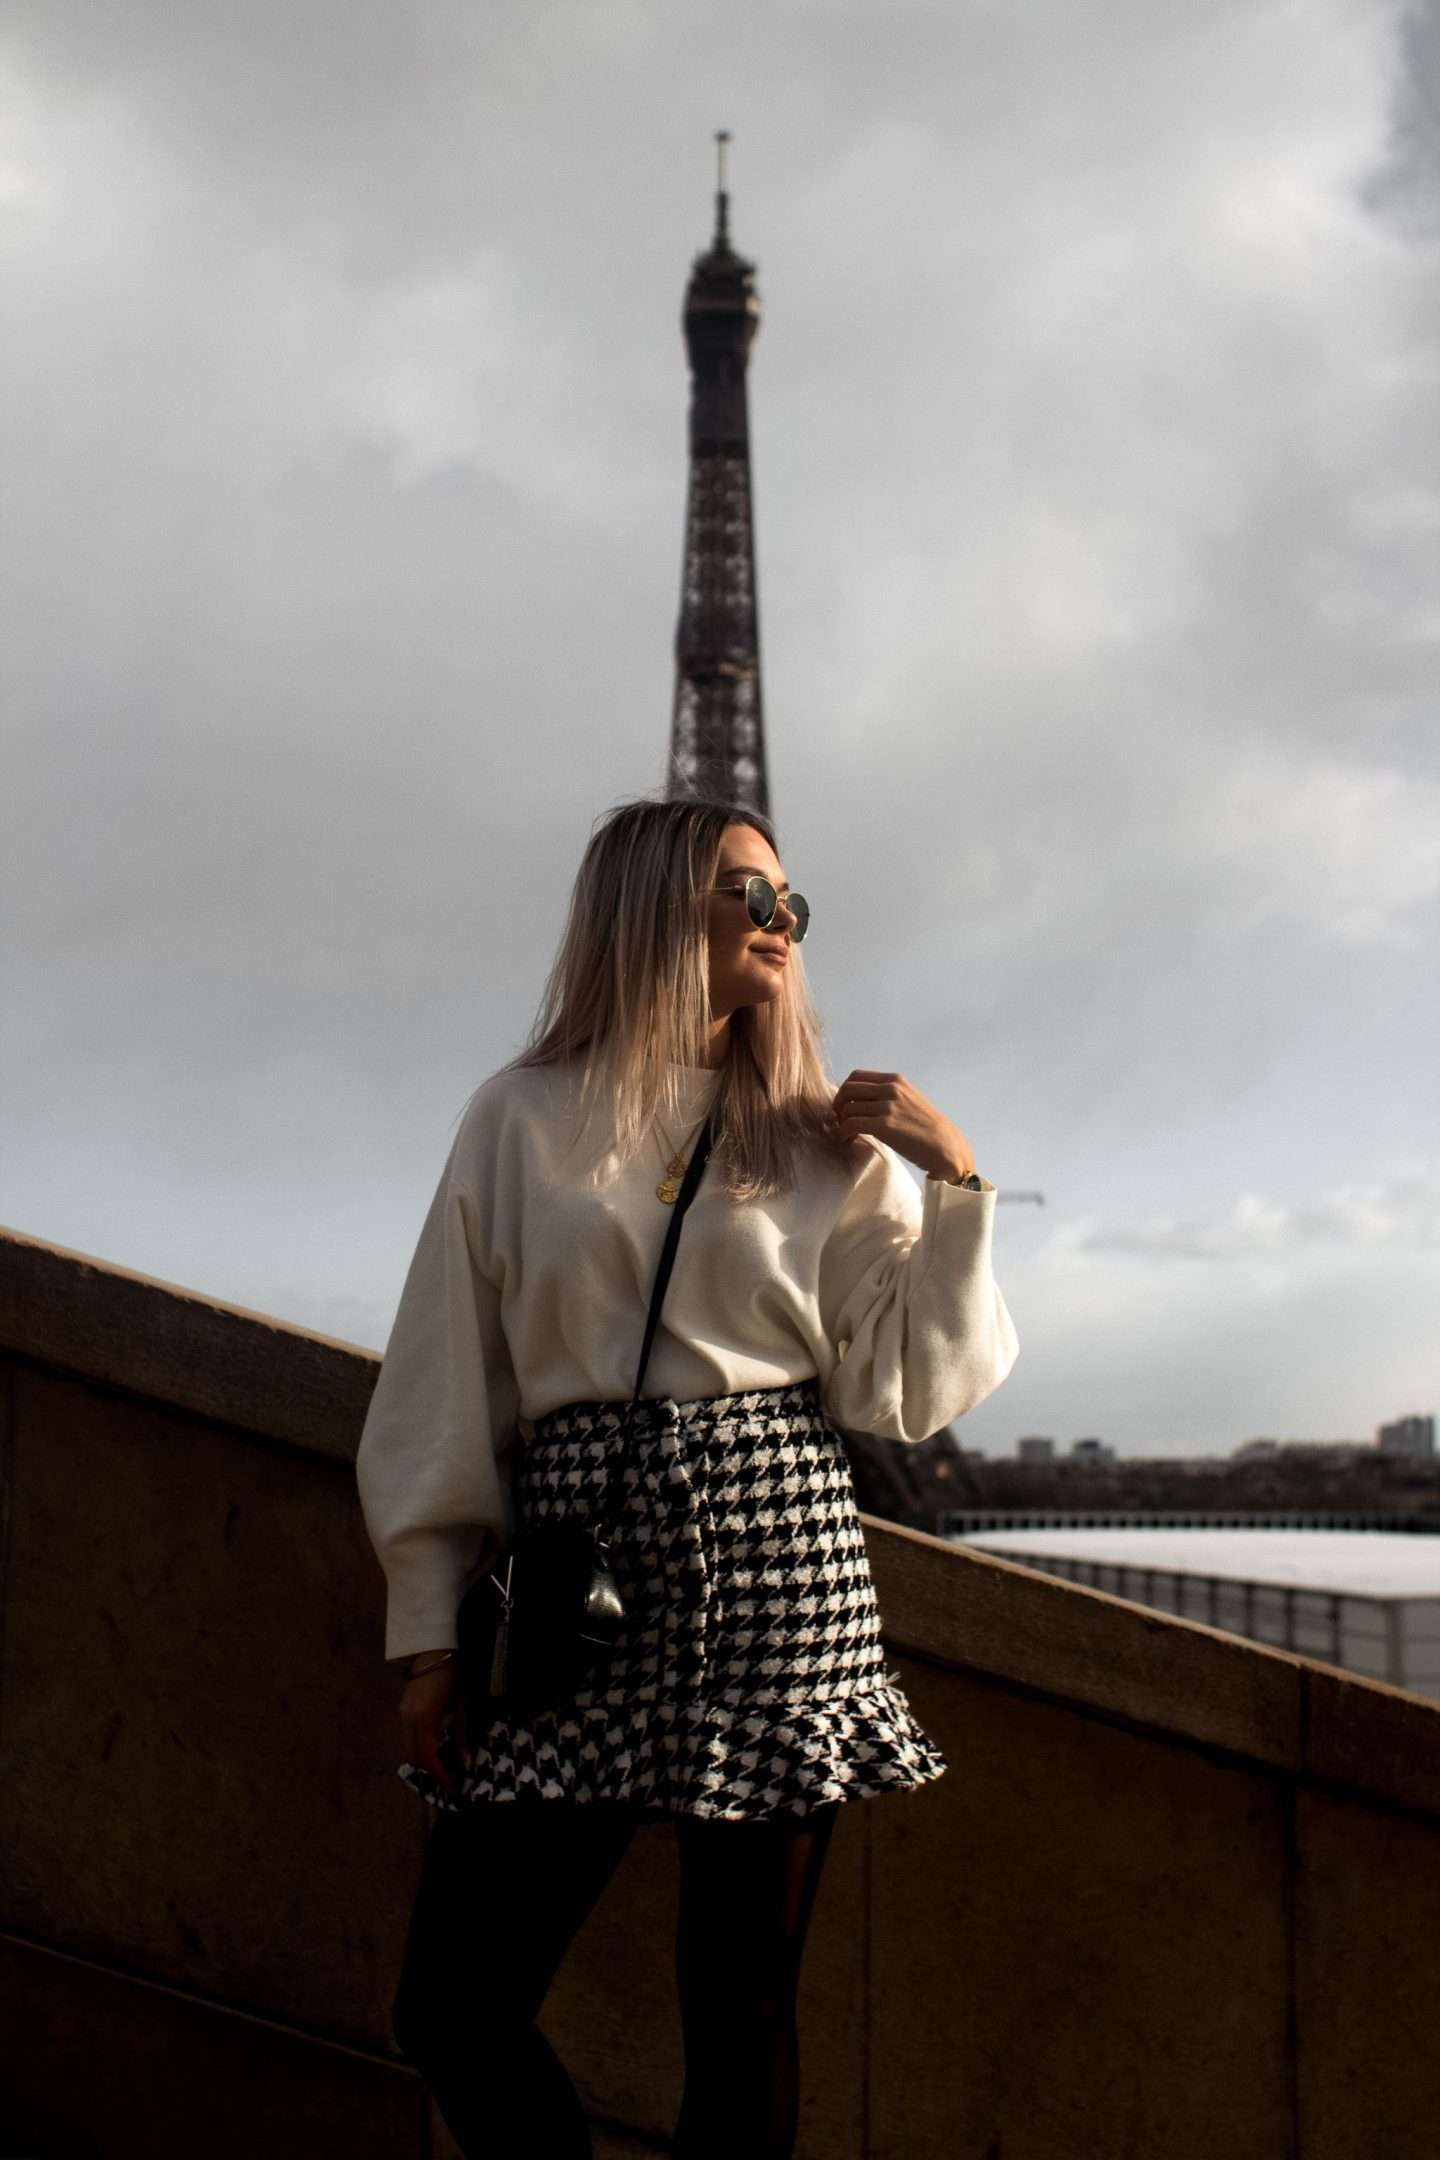 Here is the beginners guide to Paris for those who like me do not speak any word of French or have been to the city before.